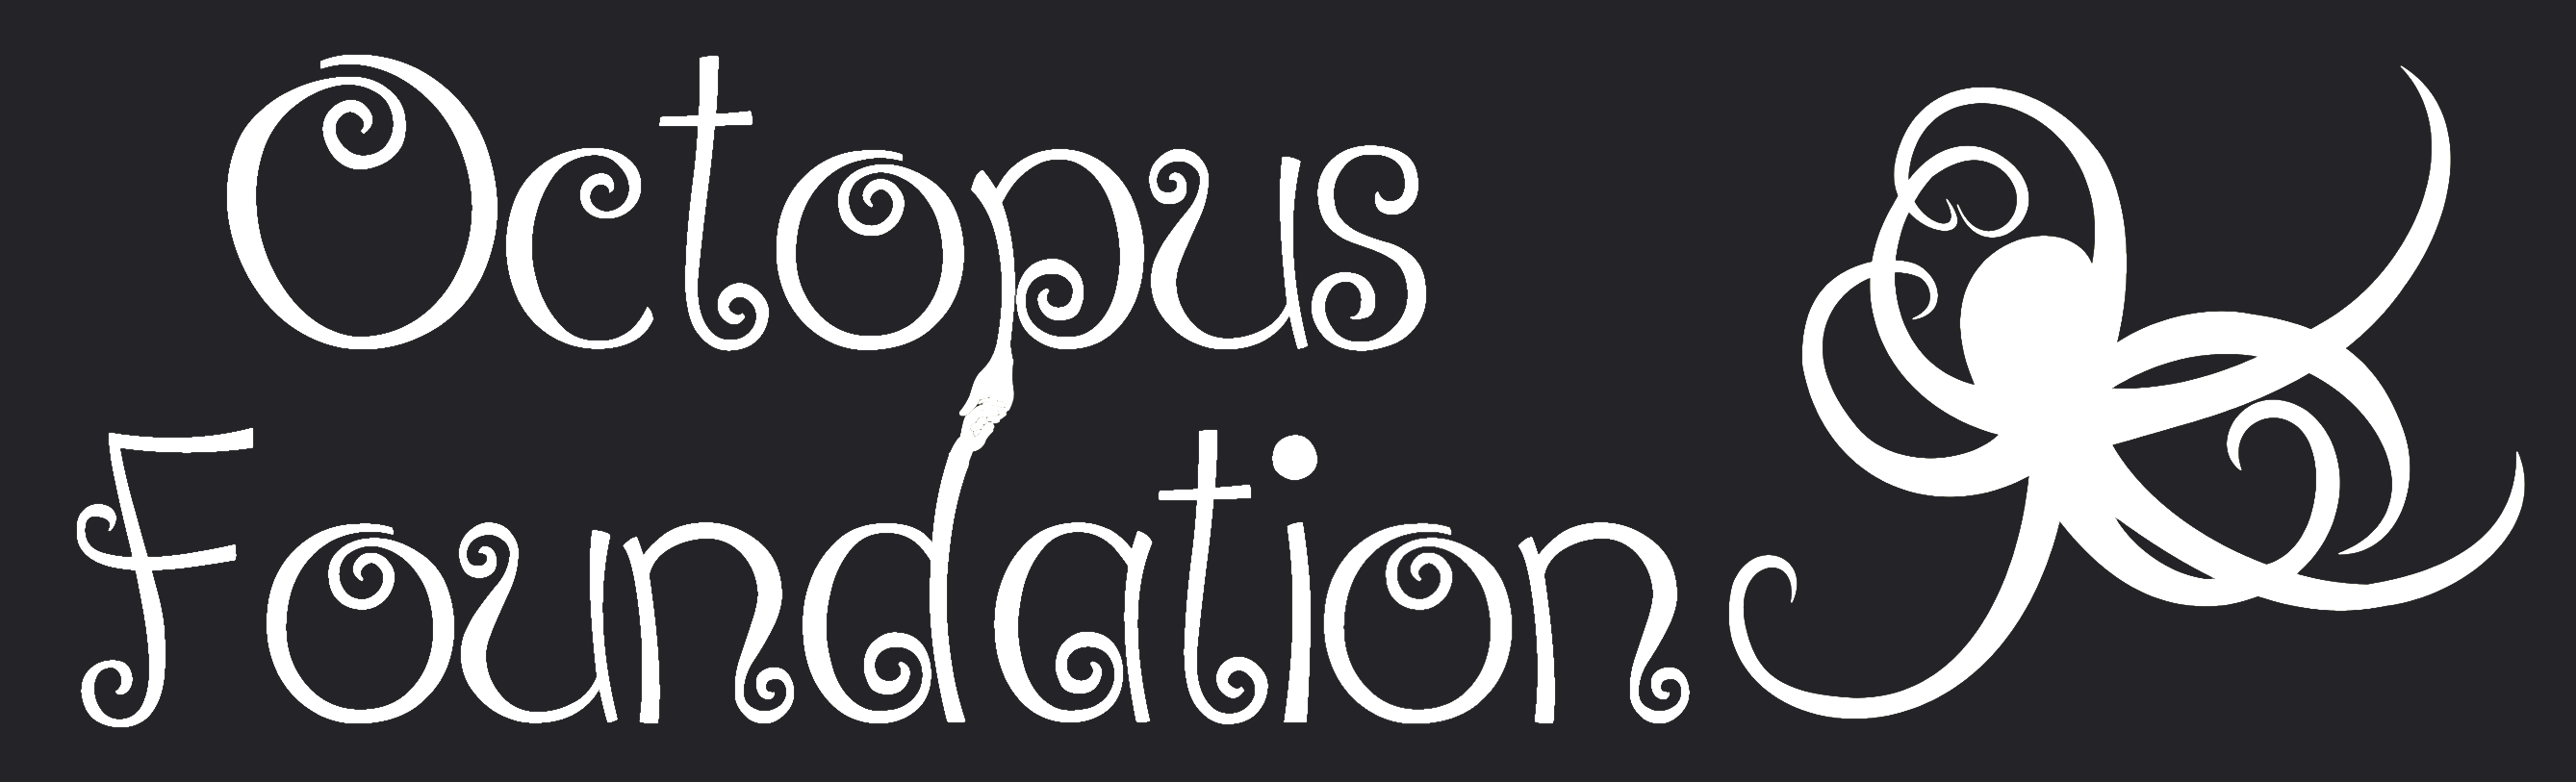 octopus-foundation-logo